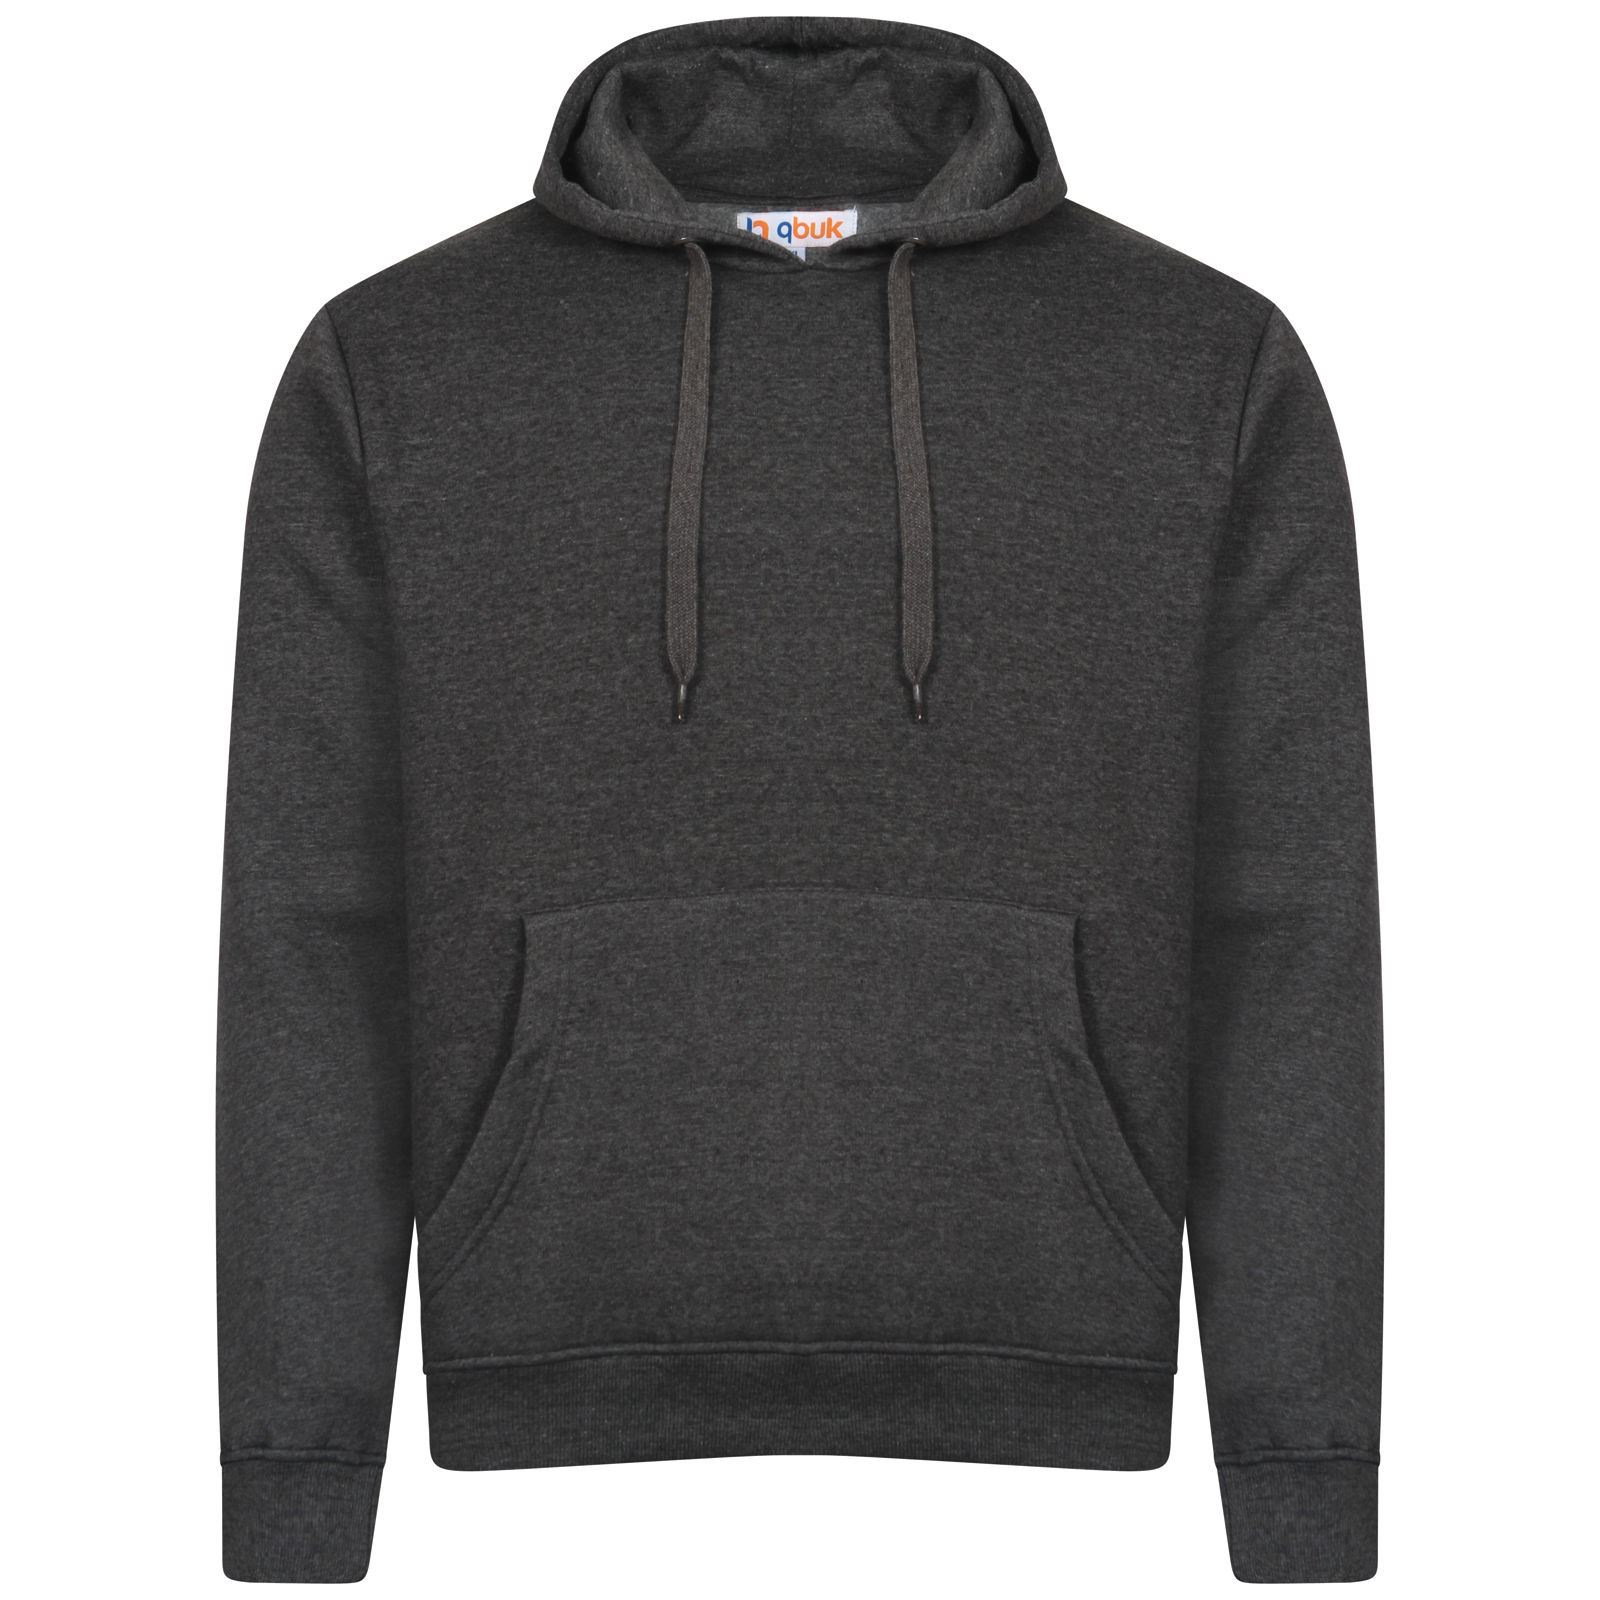 We have a variety of Mens Plain Sweatshirts & Hoodies and hoodies to fit your fashion needs. Tell the world how you feel or rock a funny saying with your outerwear. Mens Plain Sweatshirts & Hoodies and hoodies are great gifts for any occasion.